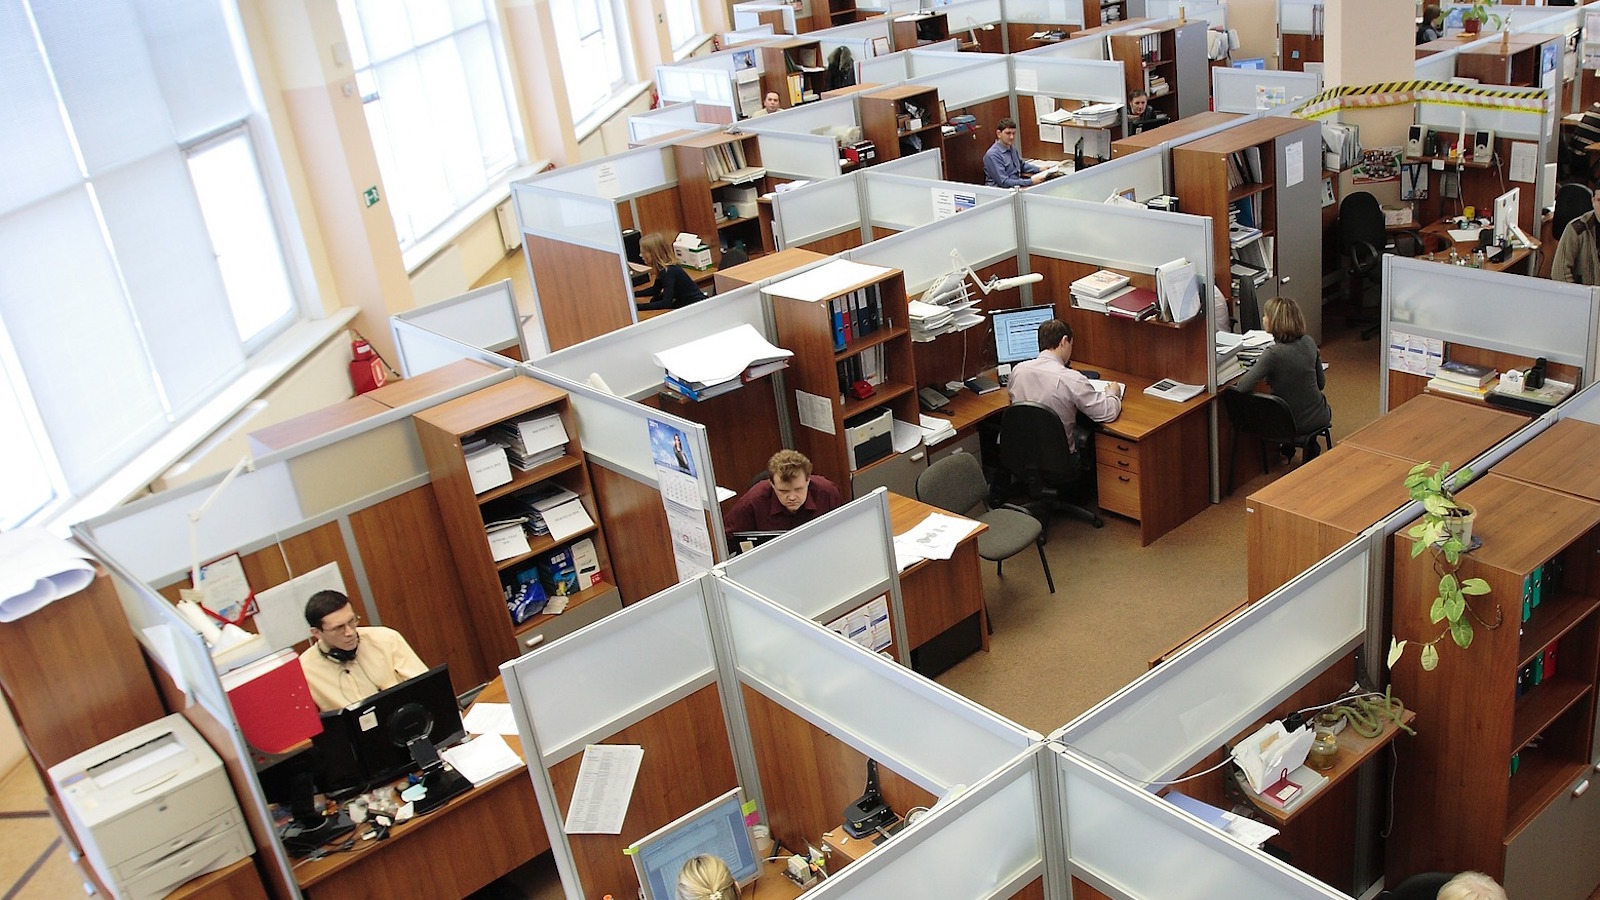 workplace cubicles